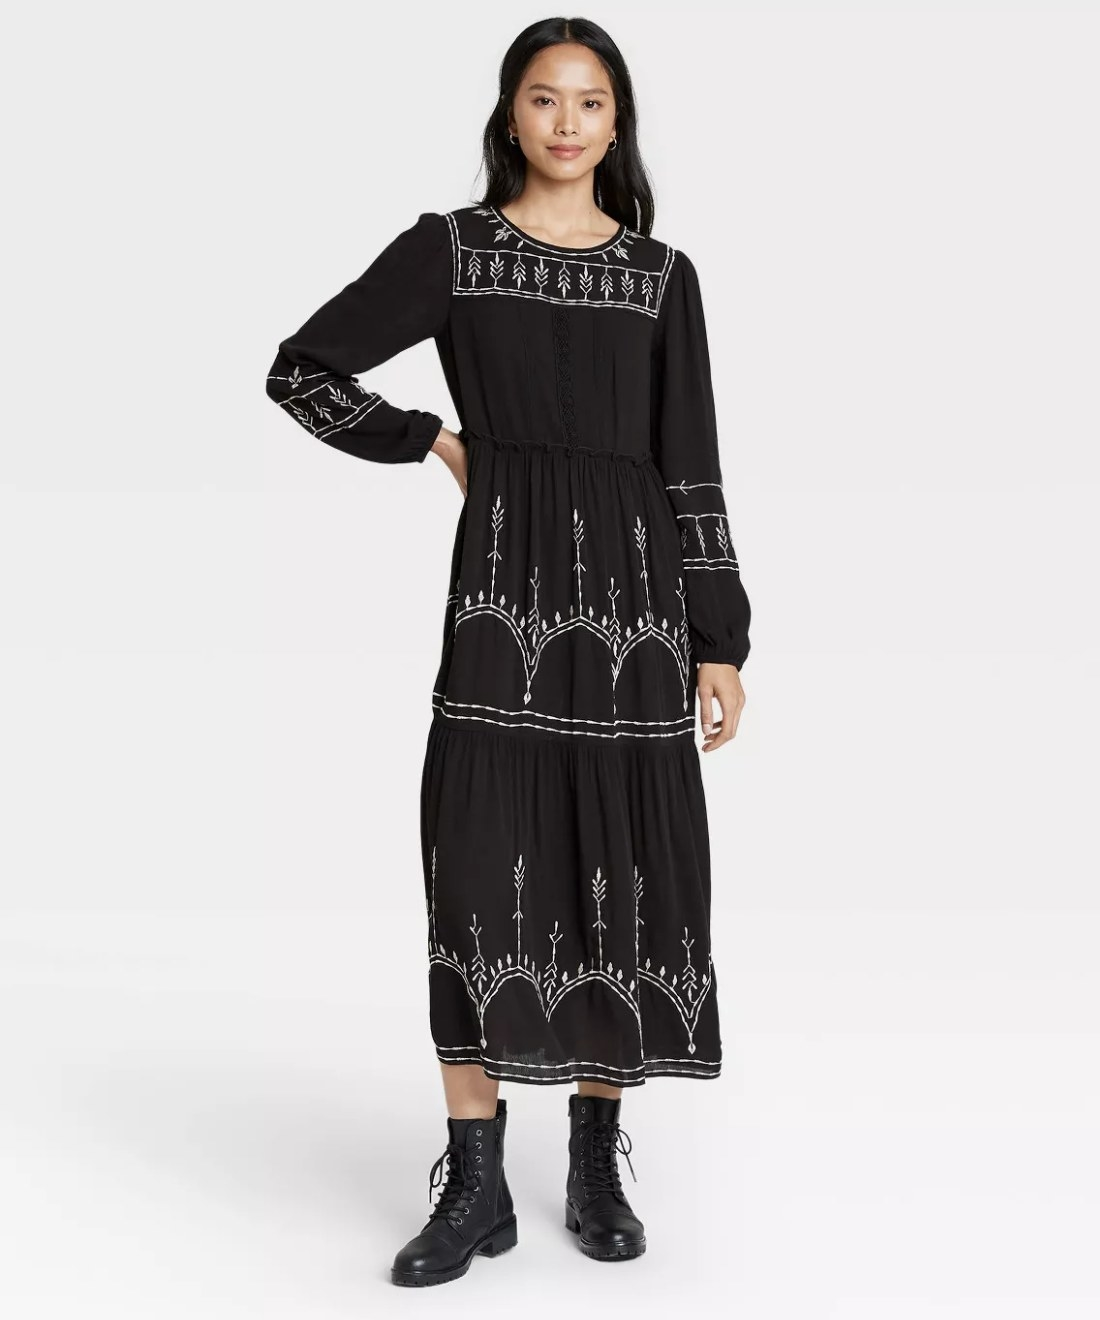 black long-sleeve maxi dress with white embroidery